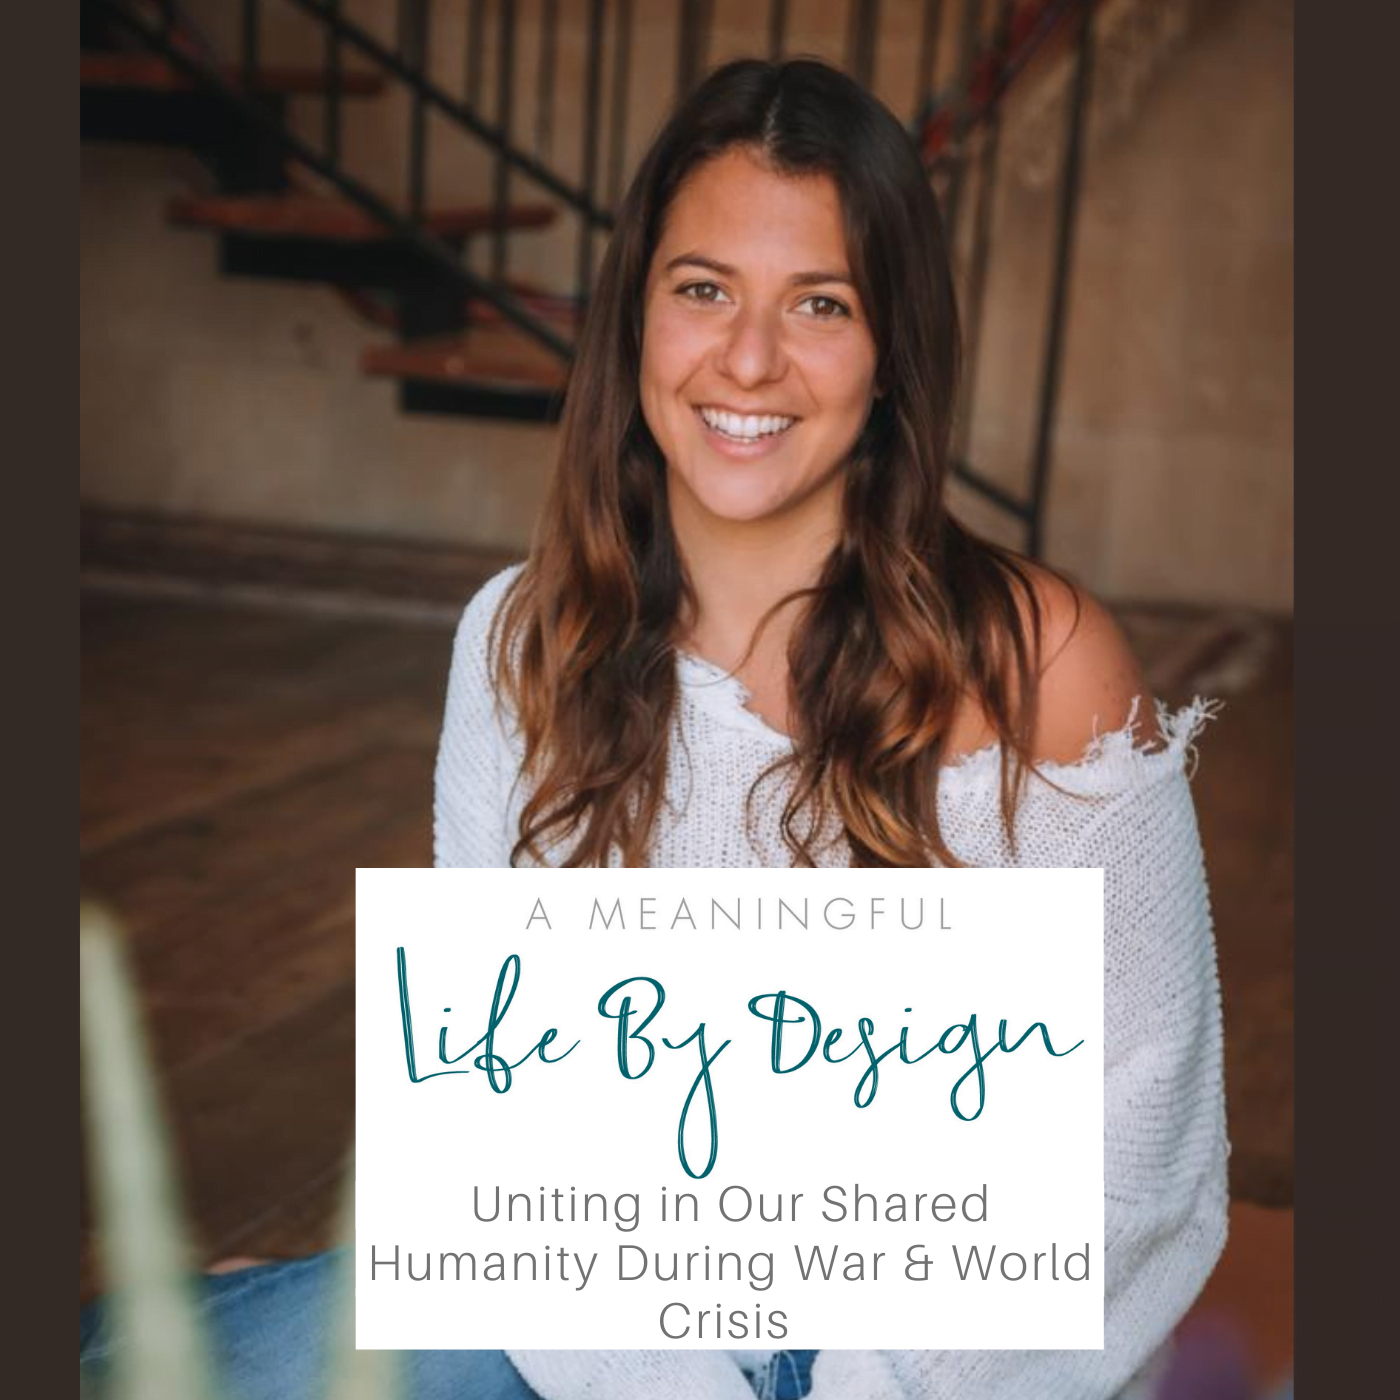 Uniting in Our Shared Humanity During War & World Crisis - Hayley Alexander